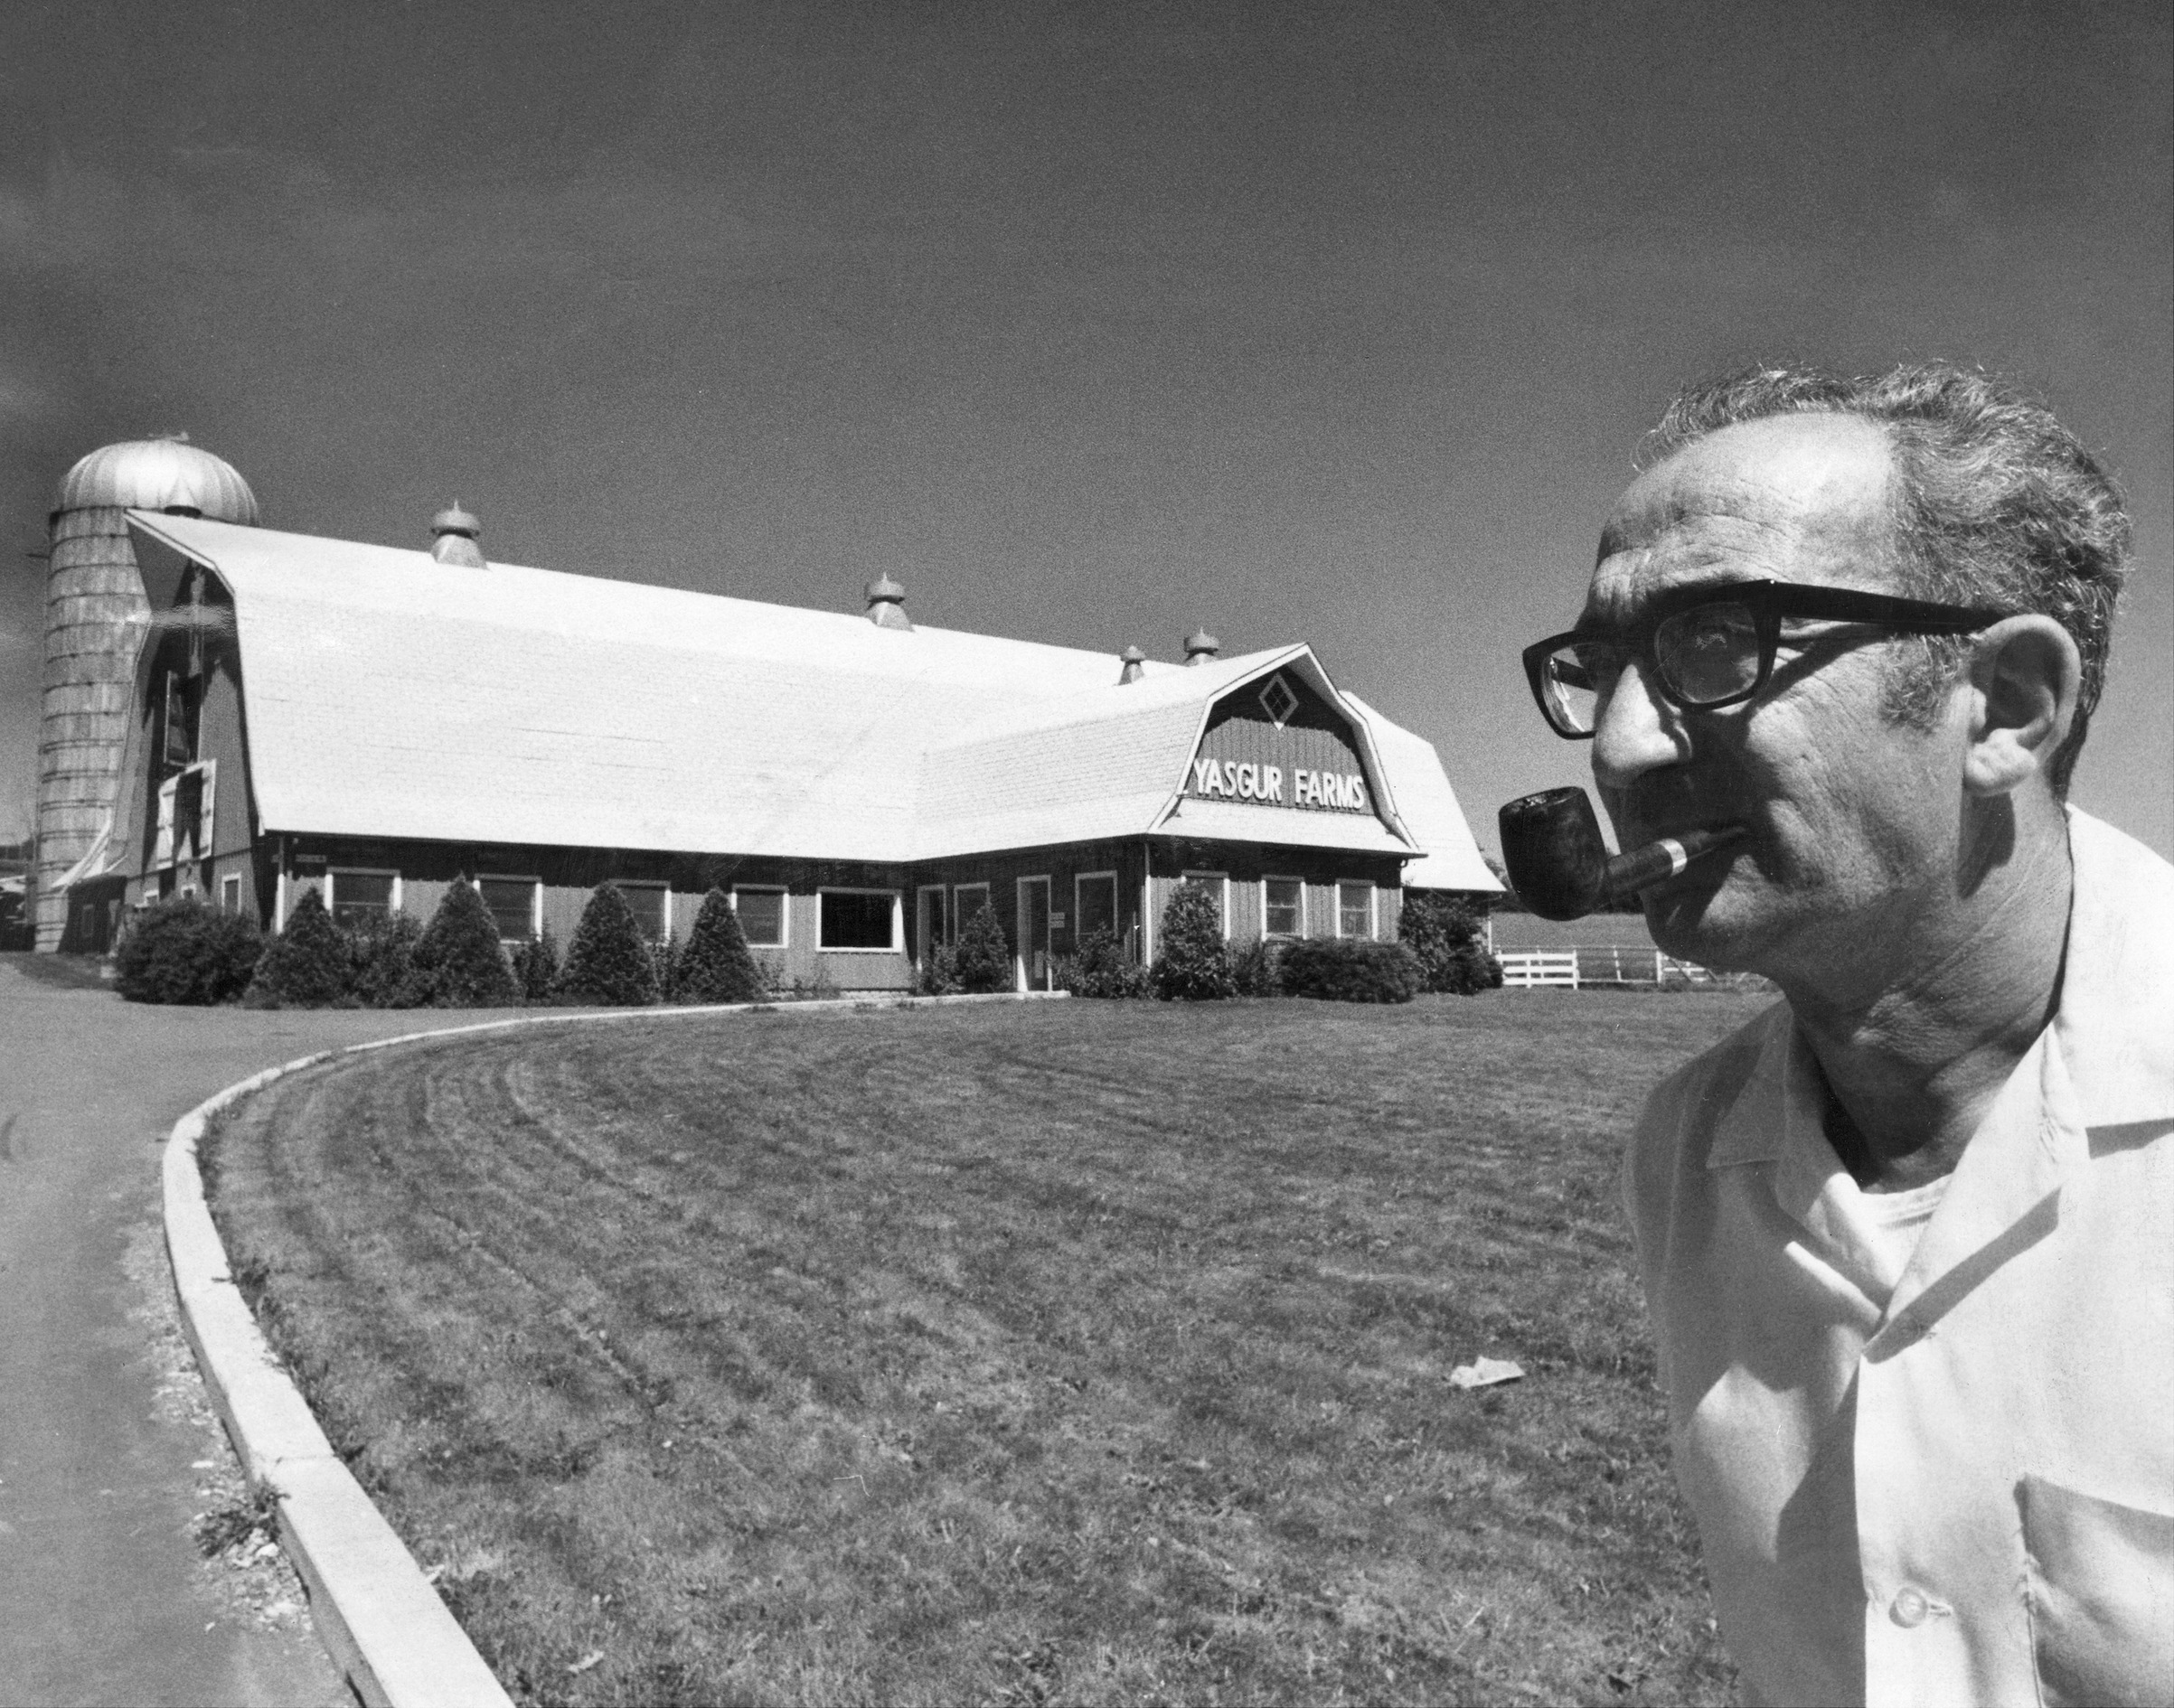 Max Yasgur, whose land was used for Woodstock festival in Monticello, N.Y. He said he doubts he'll ever rent the place again.  Farming's my business. I'm not out for publicity.